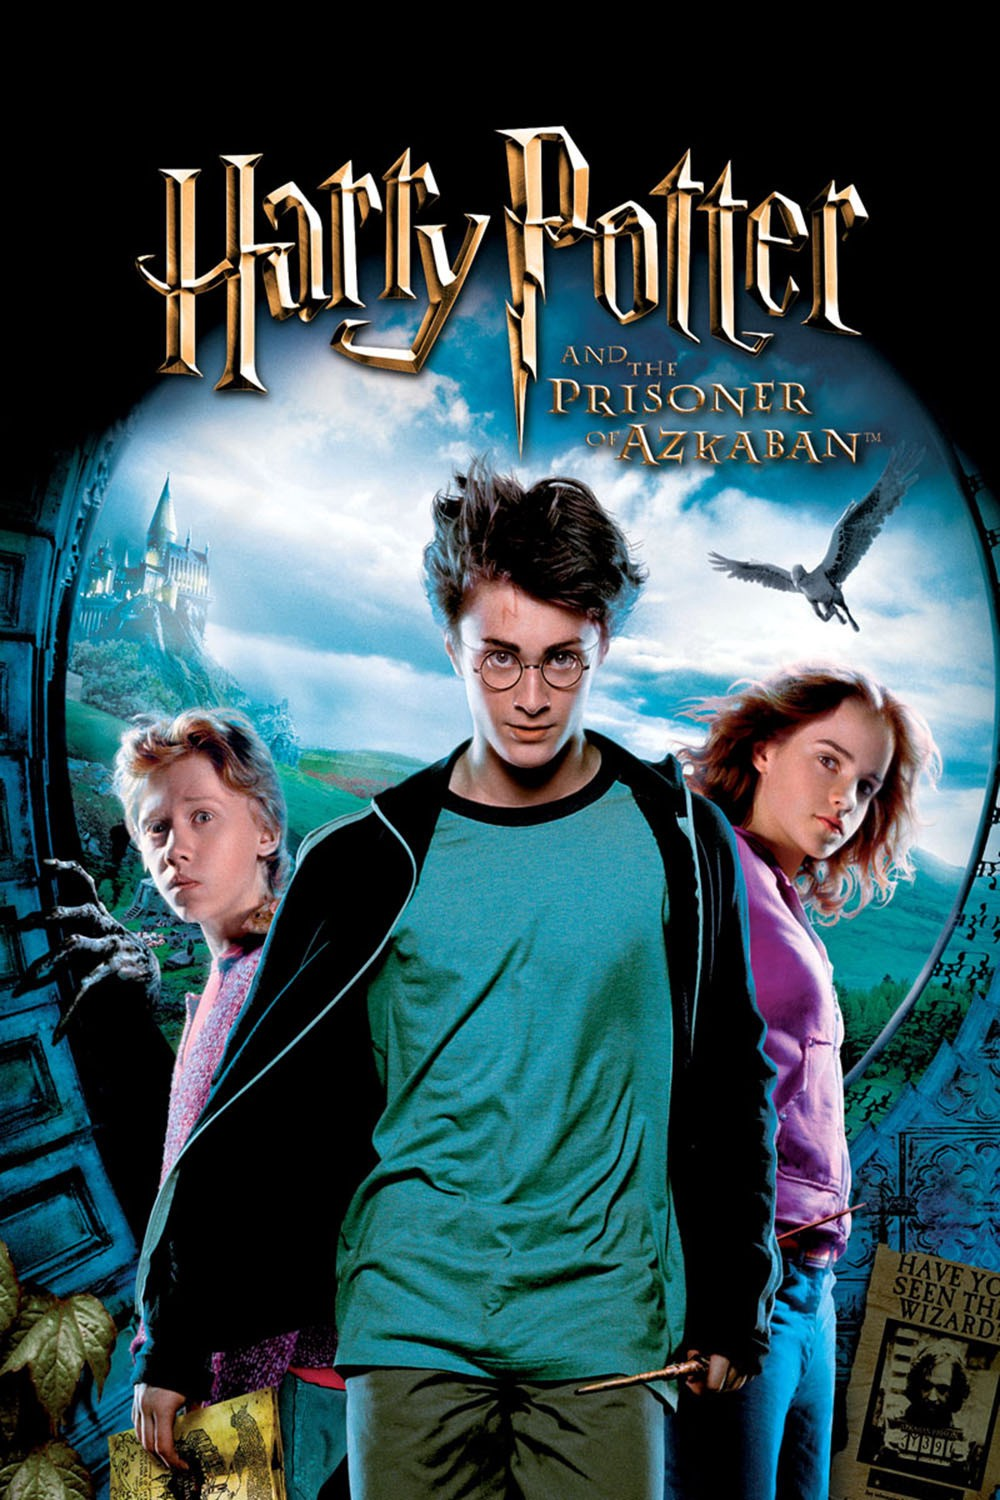 Harry Potter and the Prisoner of Azkaban (2004) - Directed by: Alfonso CuaronStarring: Daniel Radcliffe, Emma Watson, Rupert Grint, Gary Oldman, David Thewlis, Warwick Davis, Bonnie Wright, Maggie Smith, Alan Rickman, Michael Gambon, David Bradley, Tom Felton, Emma Thompson, Robbie ColtraneRated: PG for Frightening Moments, Creature Violence and Mild LanguageRunning Time: 2 h 22 mTMM Score: 4.5 stars out of 5STRENGTHS: Directing, Cinematography, Use of Magic, Production Design, Acting, Writing, StoryWEAKNESSES: Some Acting